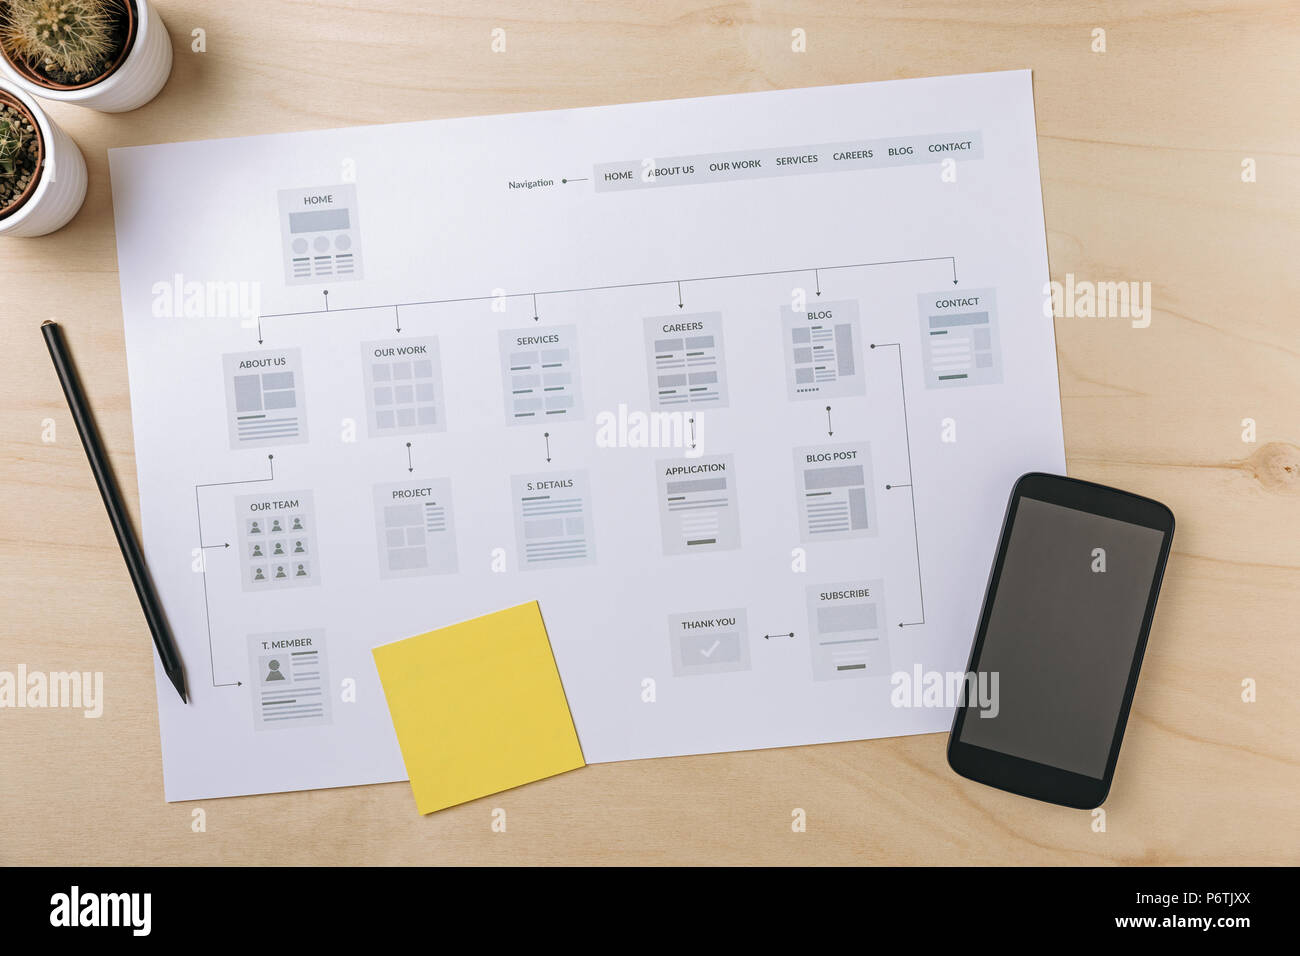 Website planning. Web designer workplace with website sitemap. Flat lay Stock Photo